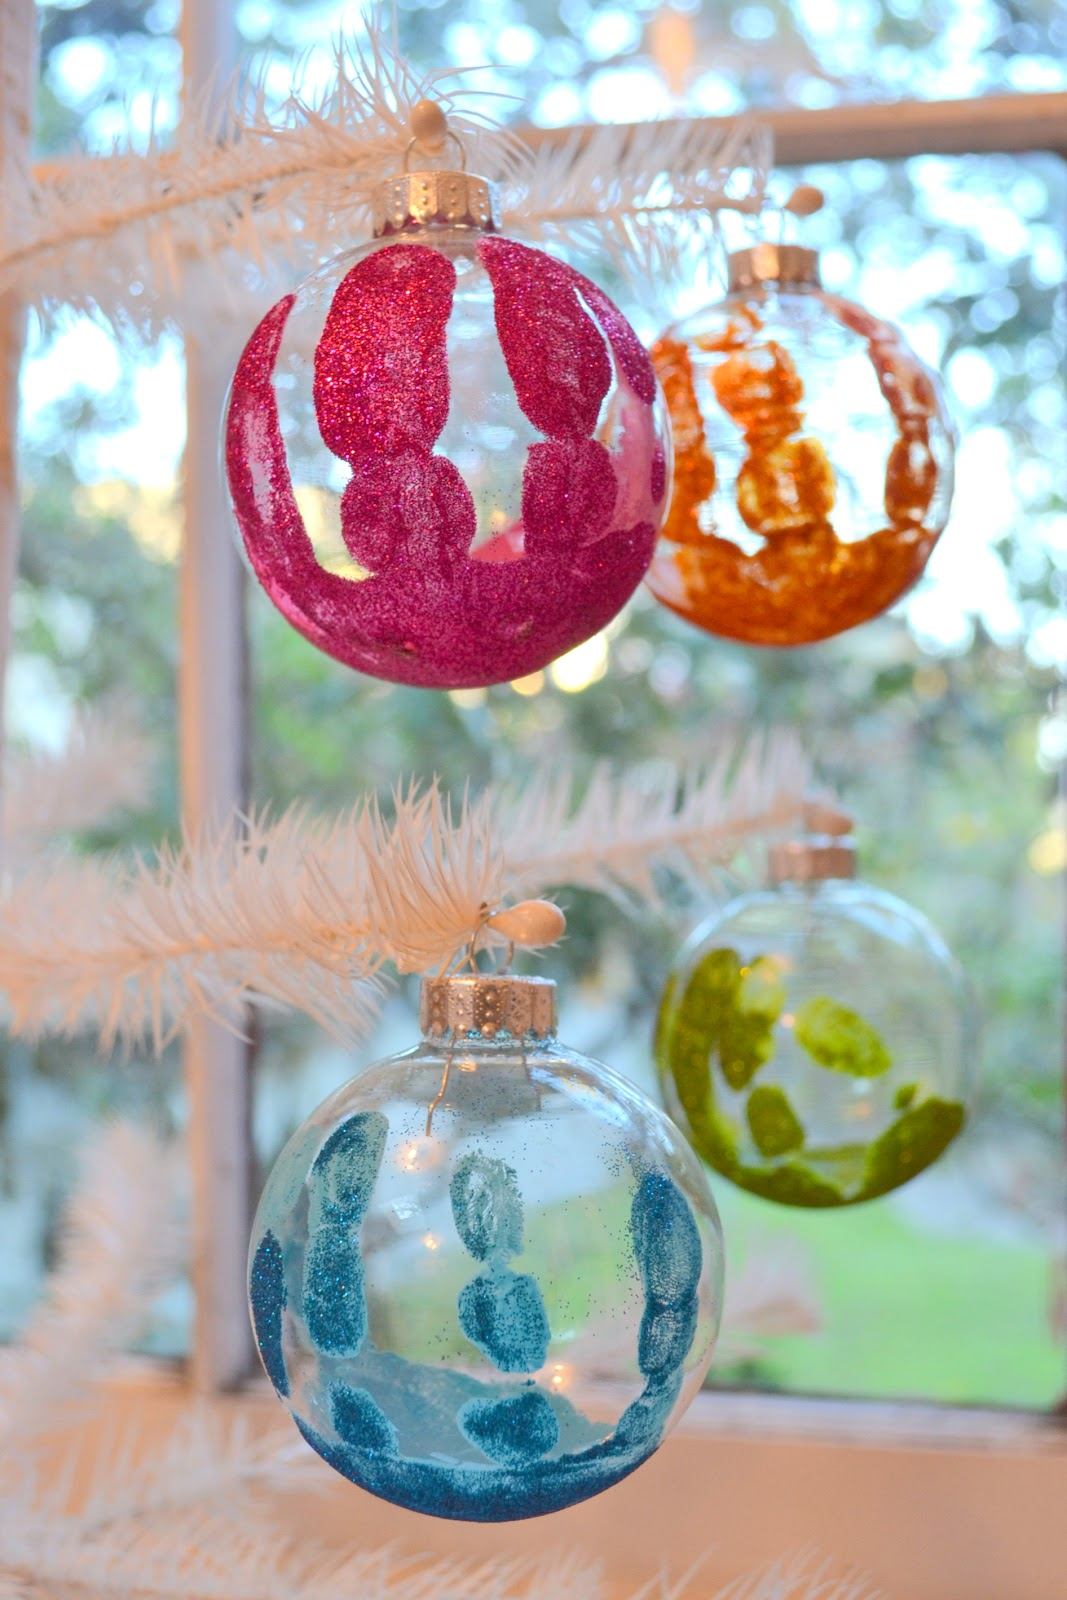 Clear christmas bulbs for crafting - Christmas Day Tradition Make Glittered Handprint Keepsake Ornaments And A Martha Stewart Crafts Glitter Wonderland Giveaway